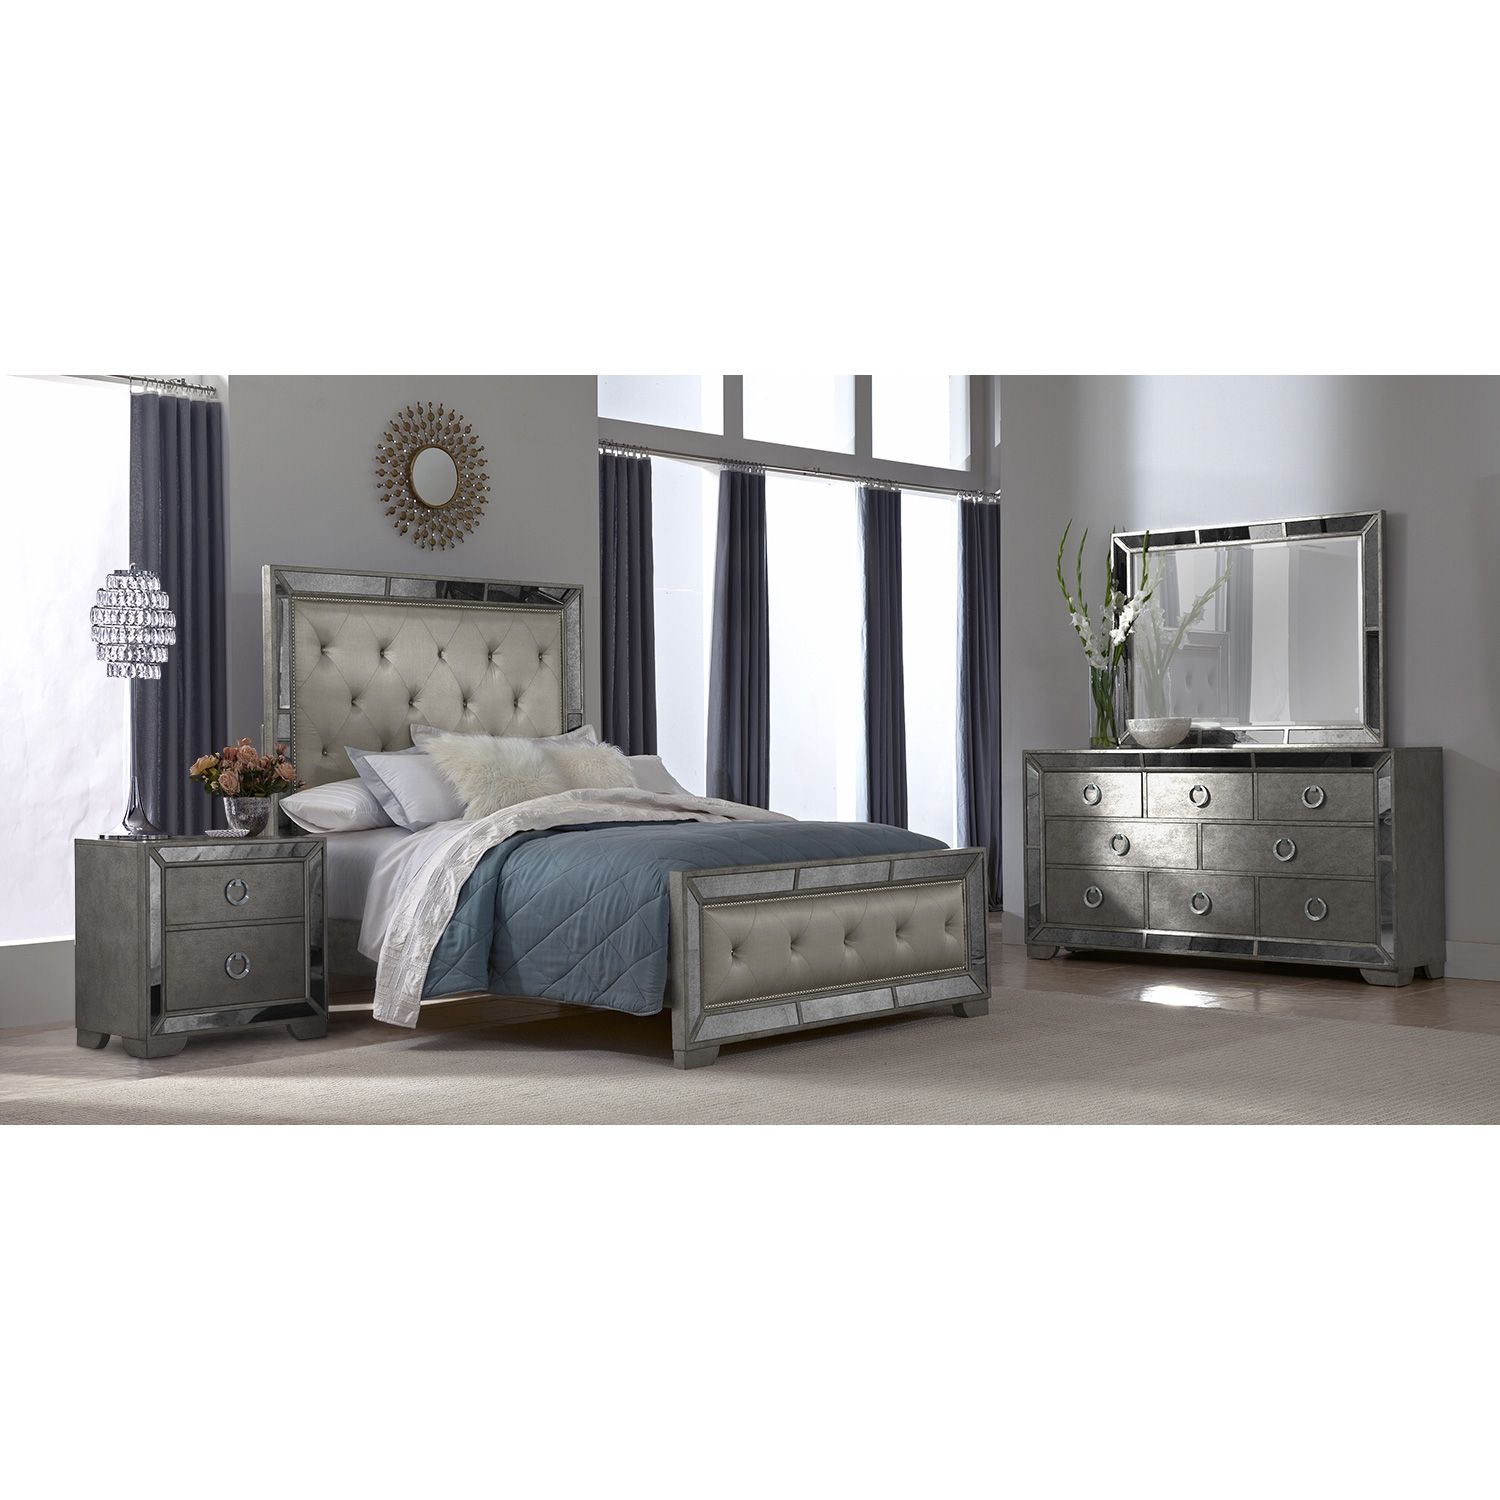 American Signature Furniture Com: Angelina 6-Piece Upholstered Bedroom Set With Nightstand